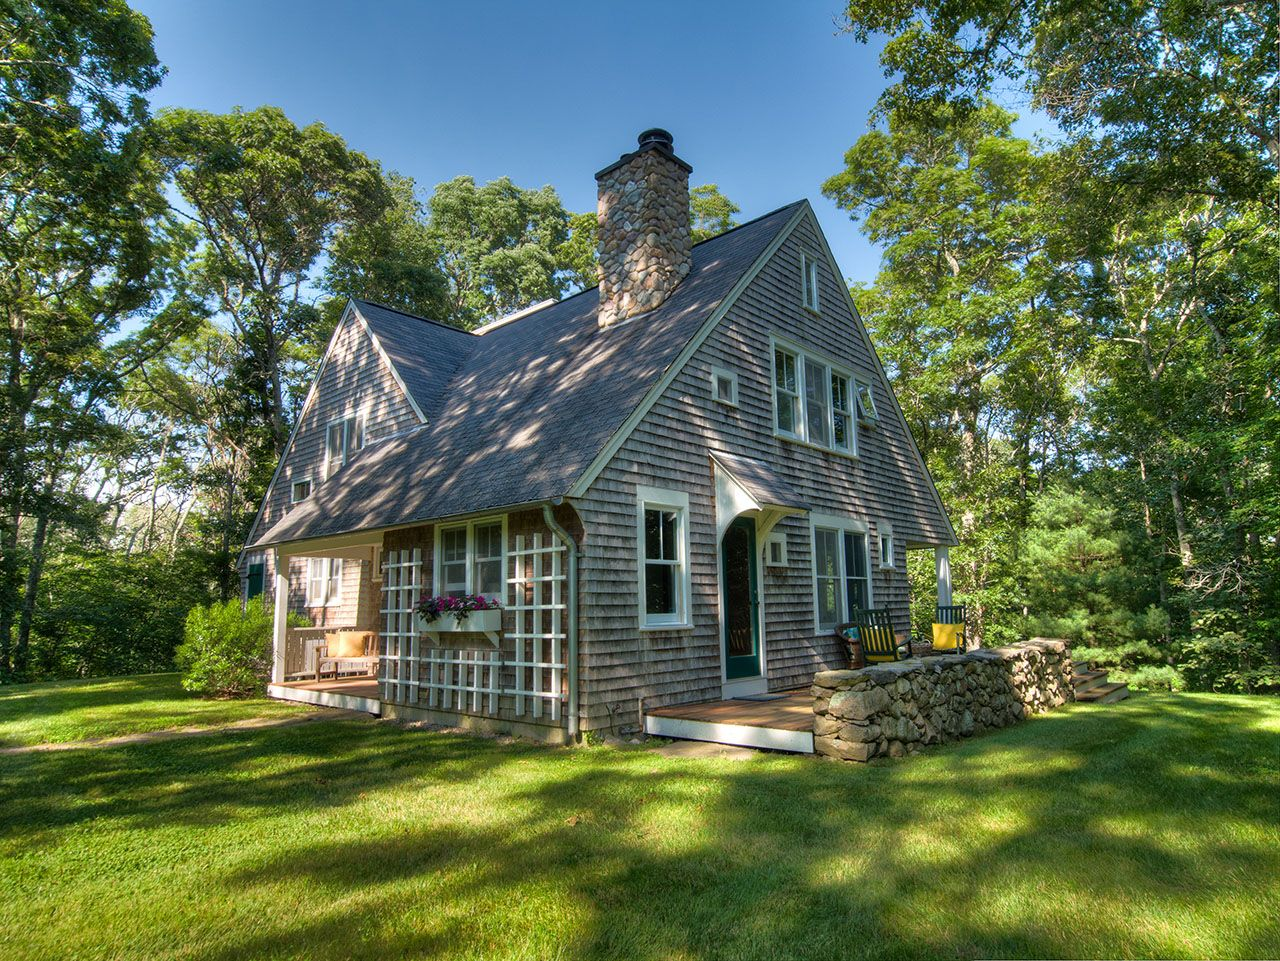 Single Family Home for Sale at 3 Old Jetty Road 3 Old Jetty Dartmouth, Massachusetts,02748 United States